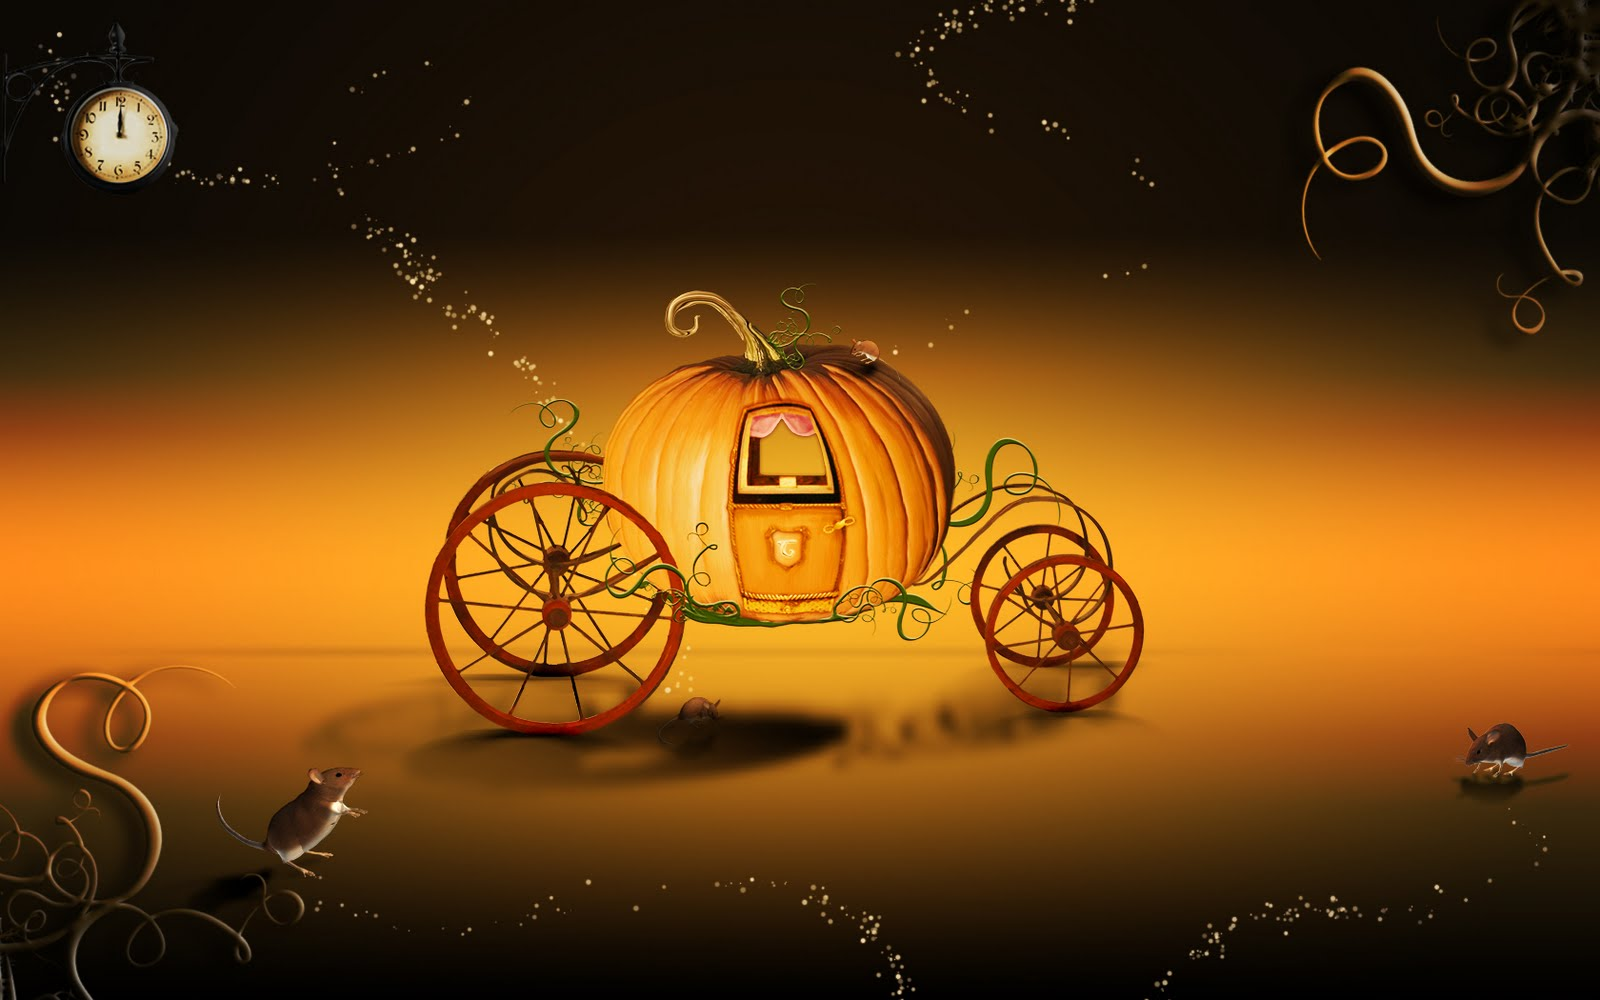 http://3.bp.blogspot.com/-teiix6Ecmr0/TkQEr5K5qFI/AAAAAAAAIj4/tmxfpRoJpuE/s1600/good+resolution+wallpapers+pumpkin-cart-wallpaper.jpg